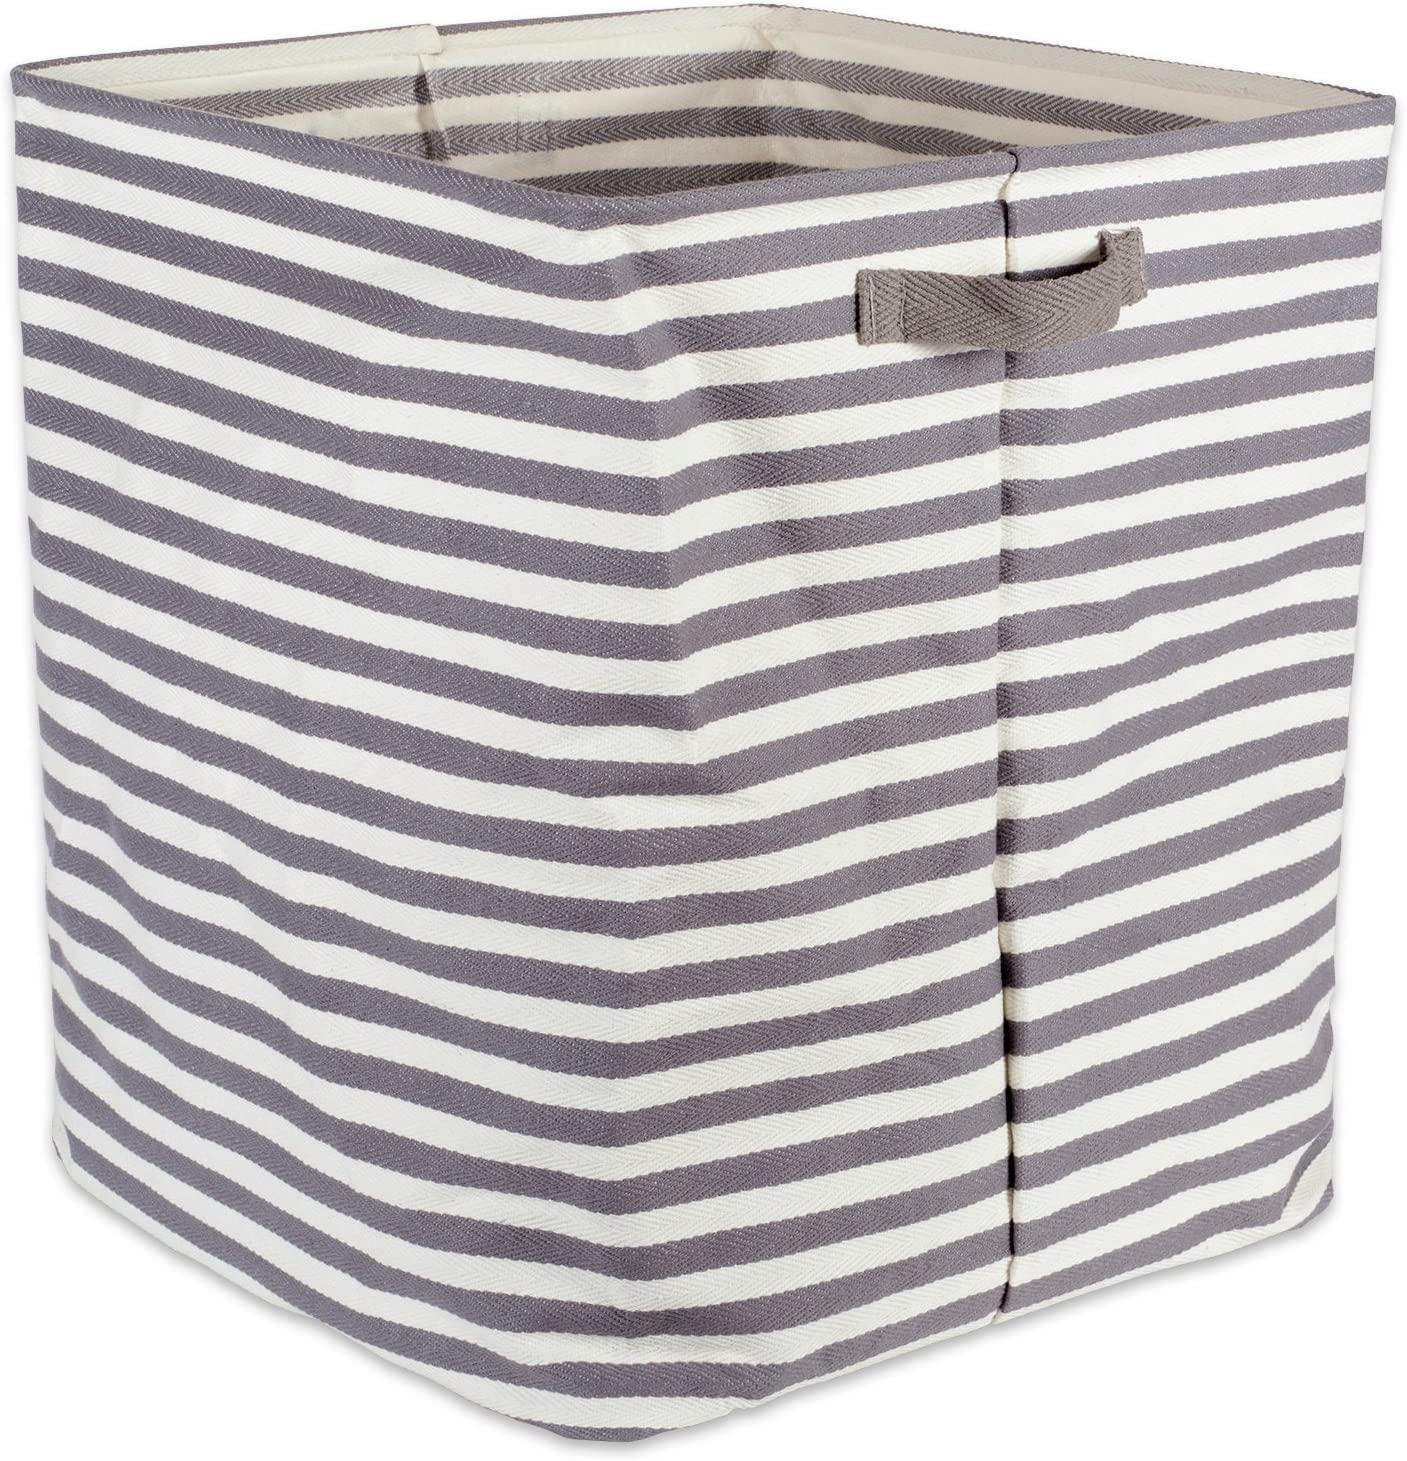 "DII Cabana Stripe Collapsible Waterproof Coated Anti-mold Cotton Rectangle Hamper, Perfect For Laundry Room, Bedroom, Nursery, Dorm, Closet, and Home Organization, 16 x 16 x 19"" - Gray"